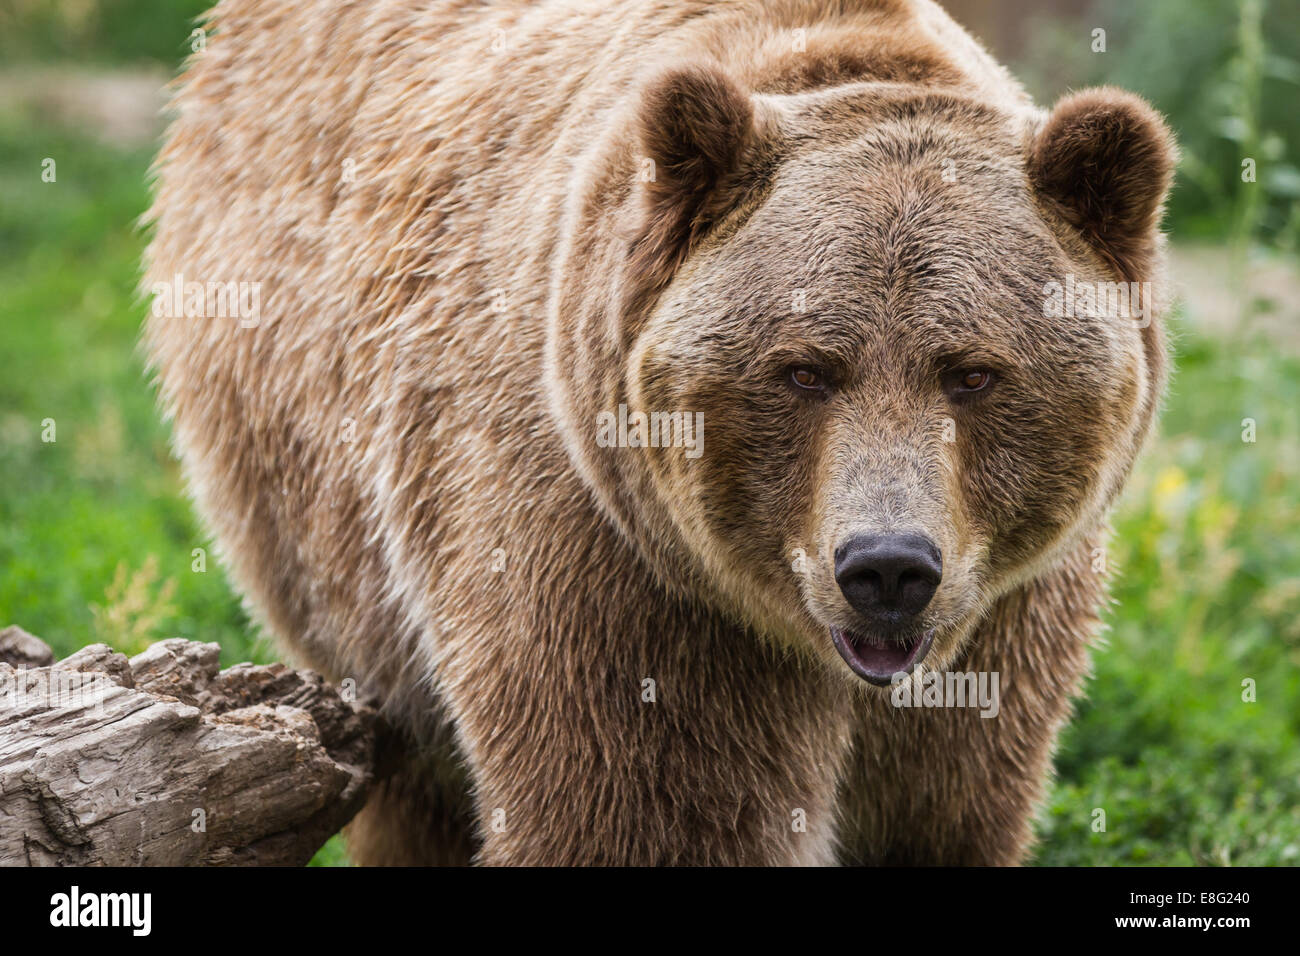 close up of an adult grizzly bear on green grass - Stock Image